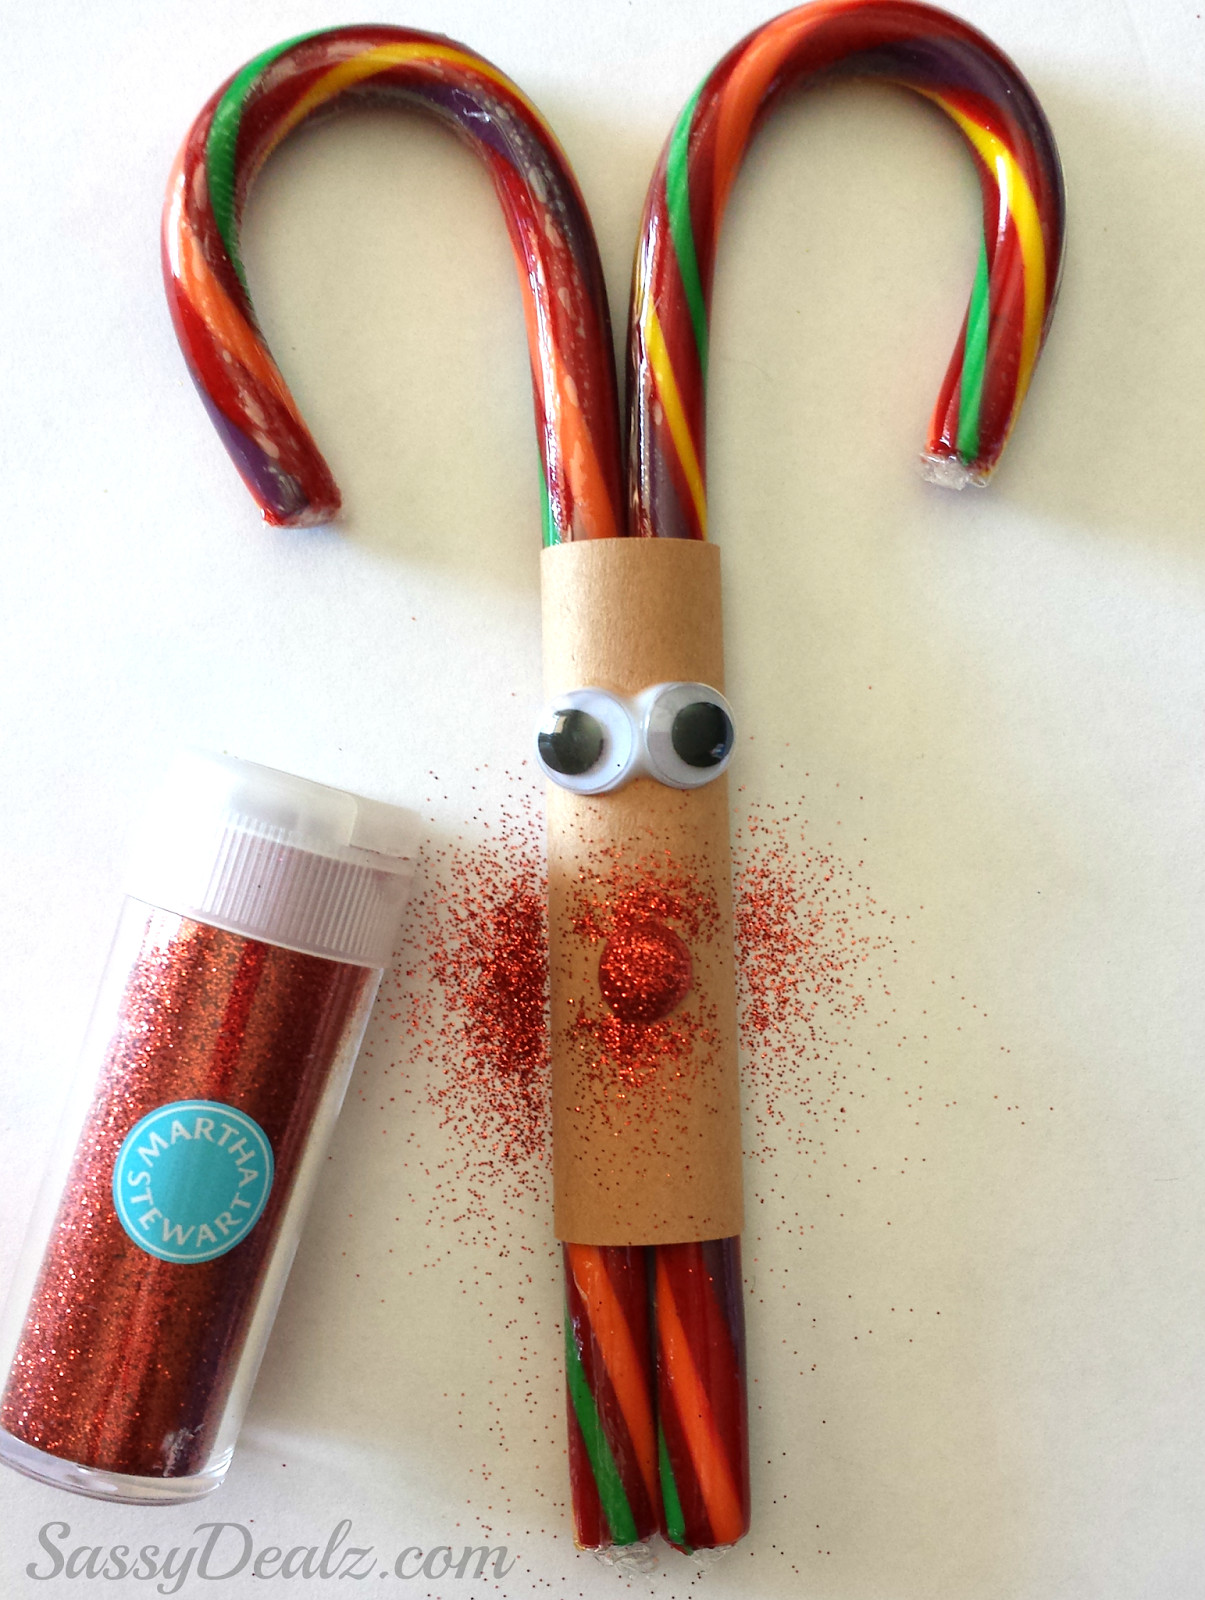 Candy Cane Crafts For Christmas  Candy Cane Reindeer Christmas Craft or Treat For Kids